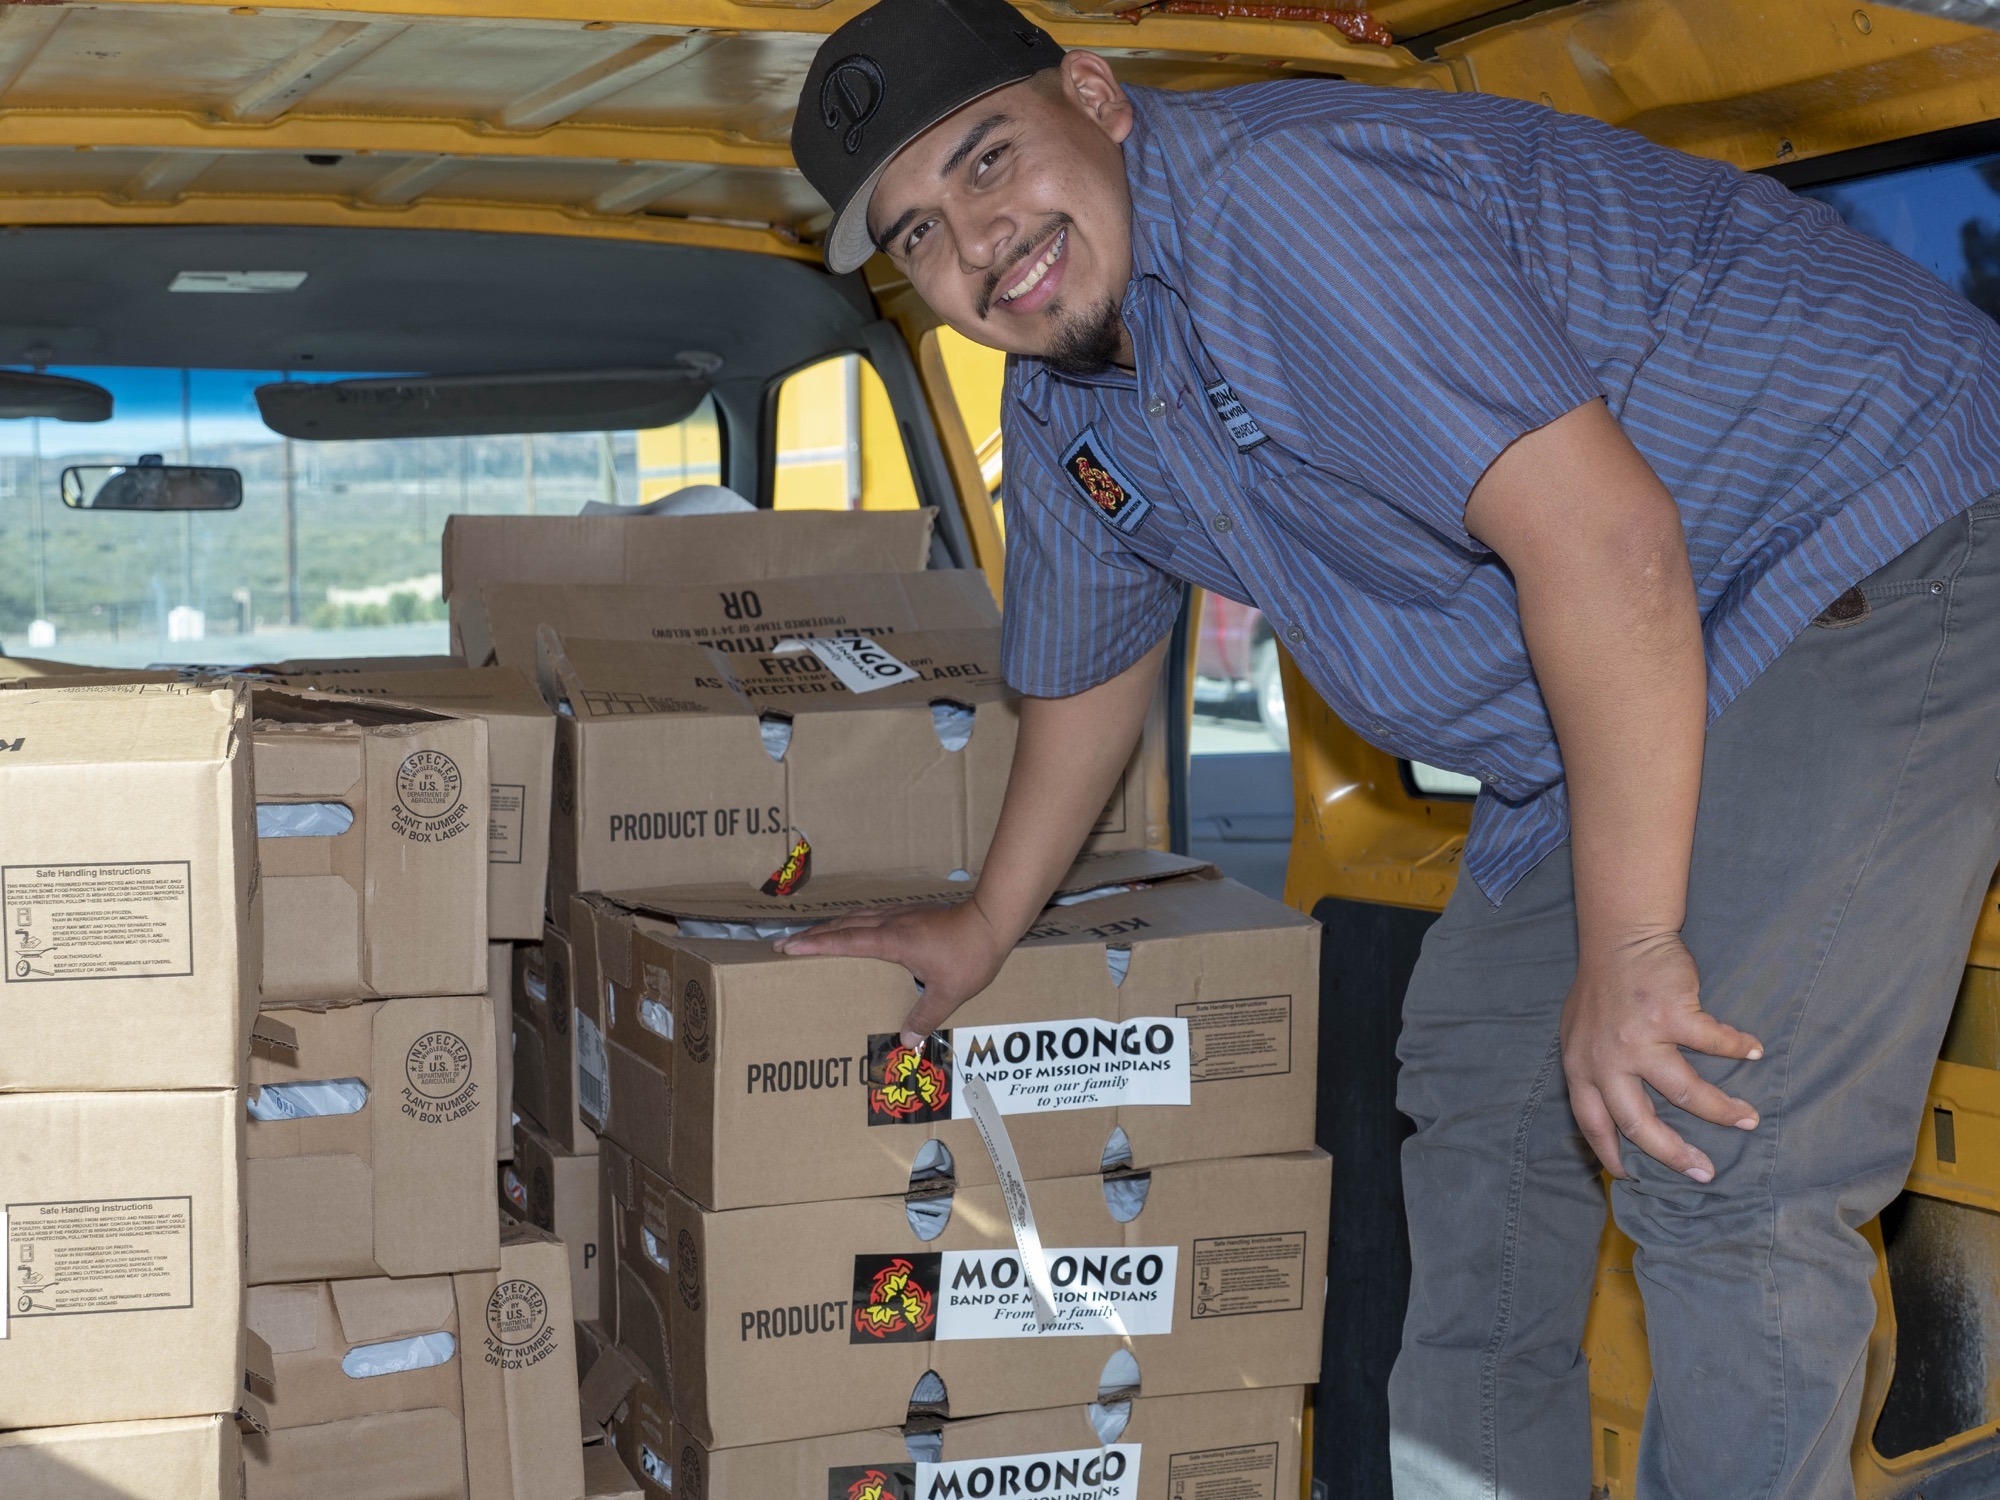 Morongo Band donates a record 12,500 turkeys for annual outreach program